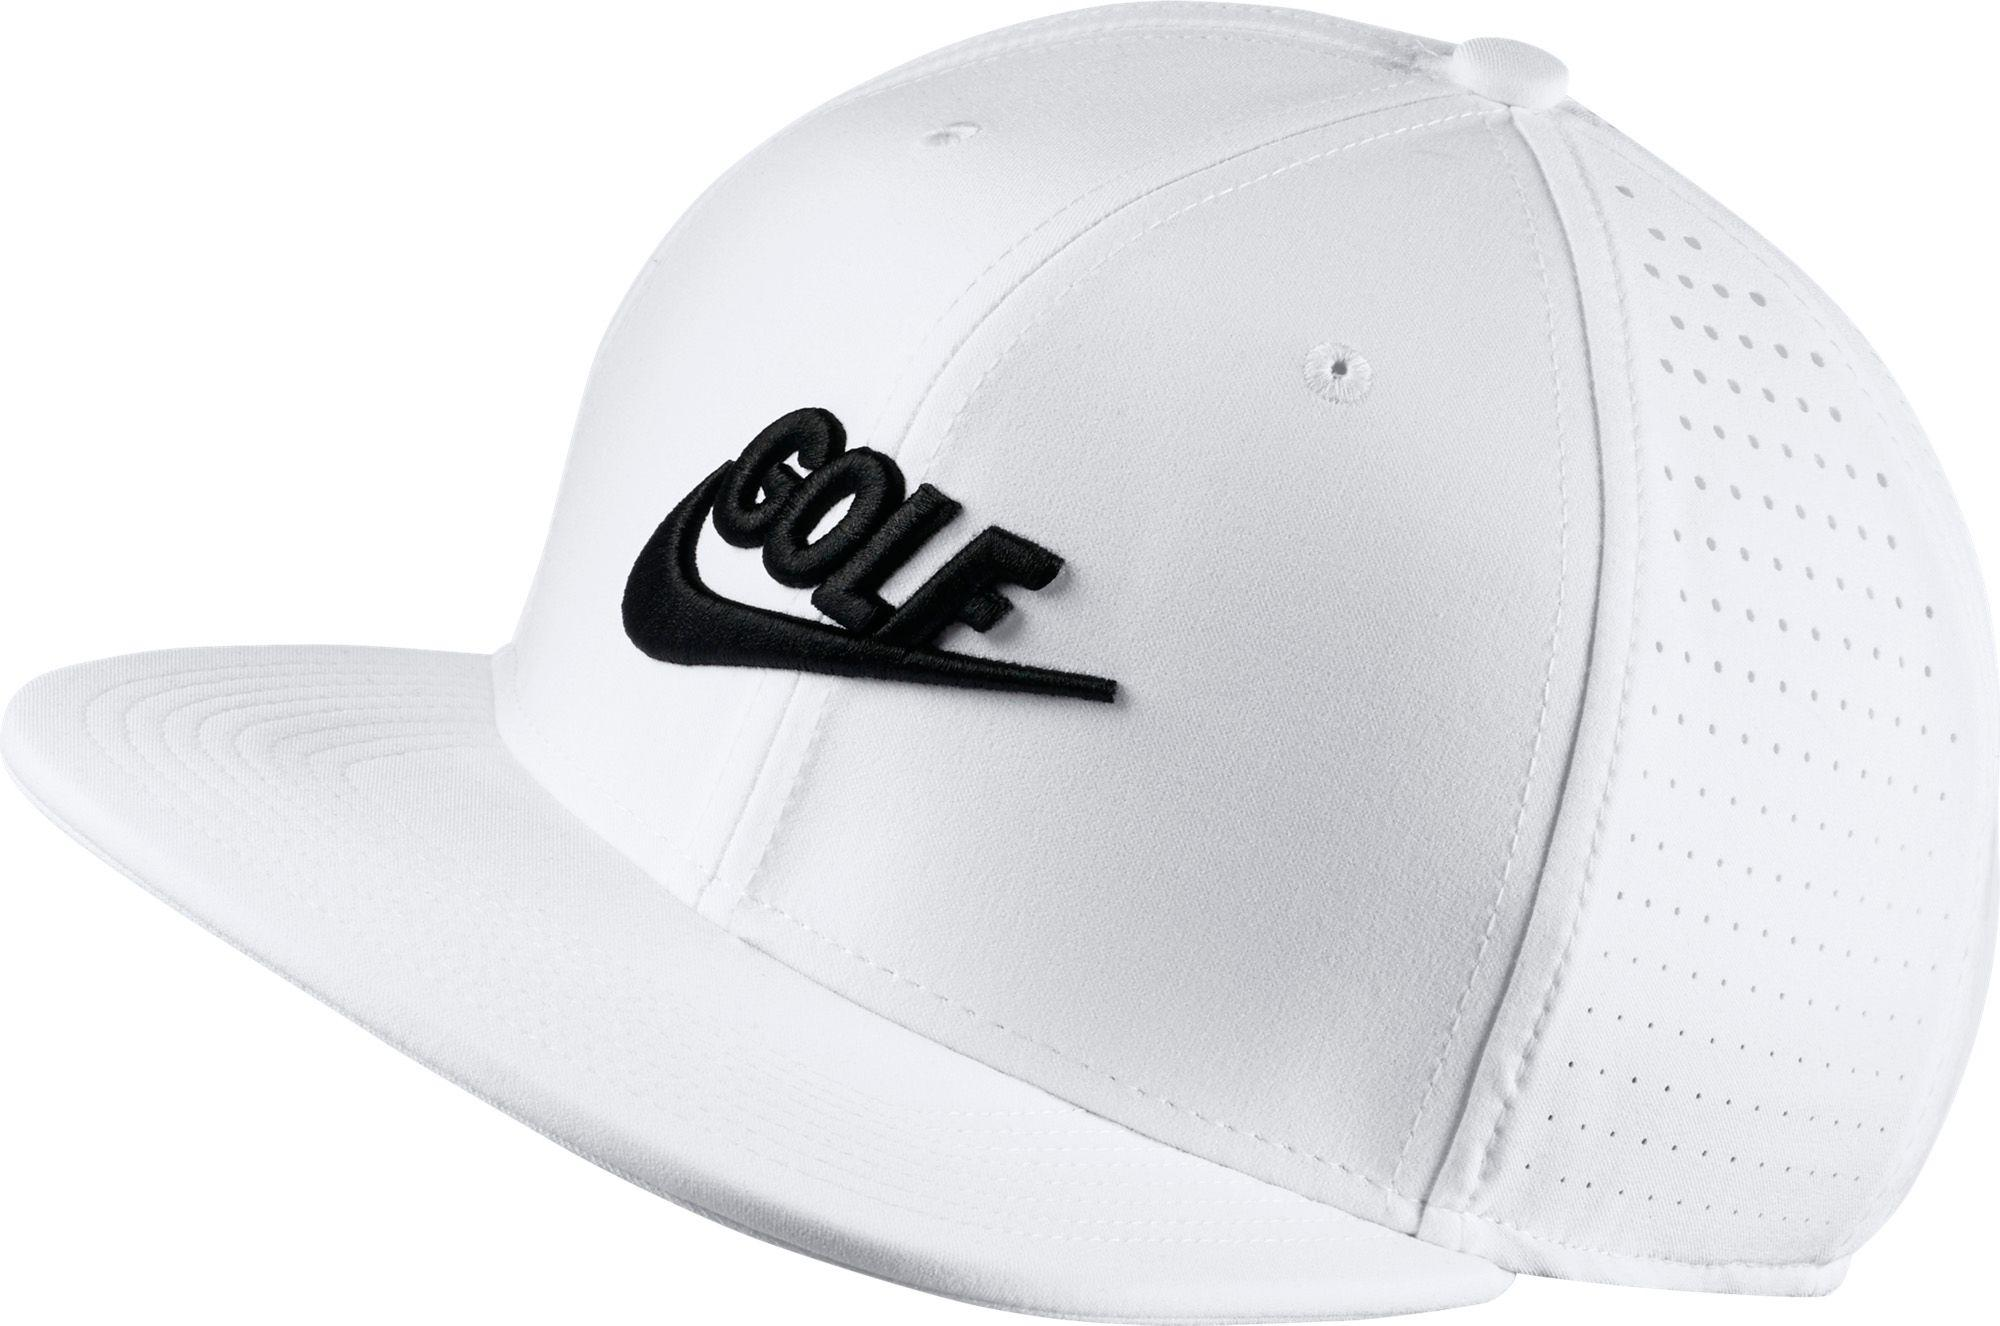 Lyst - Nike Perforated Snapback Golf Hat in White for Men 345979ff6a7a